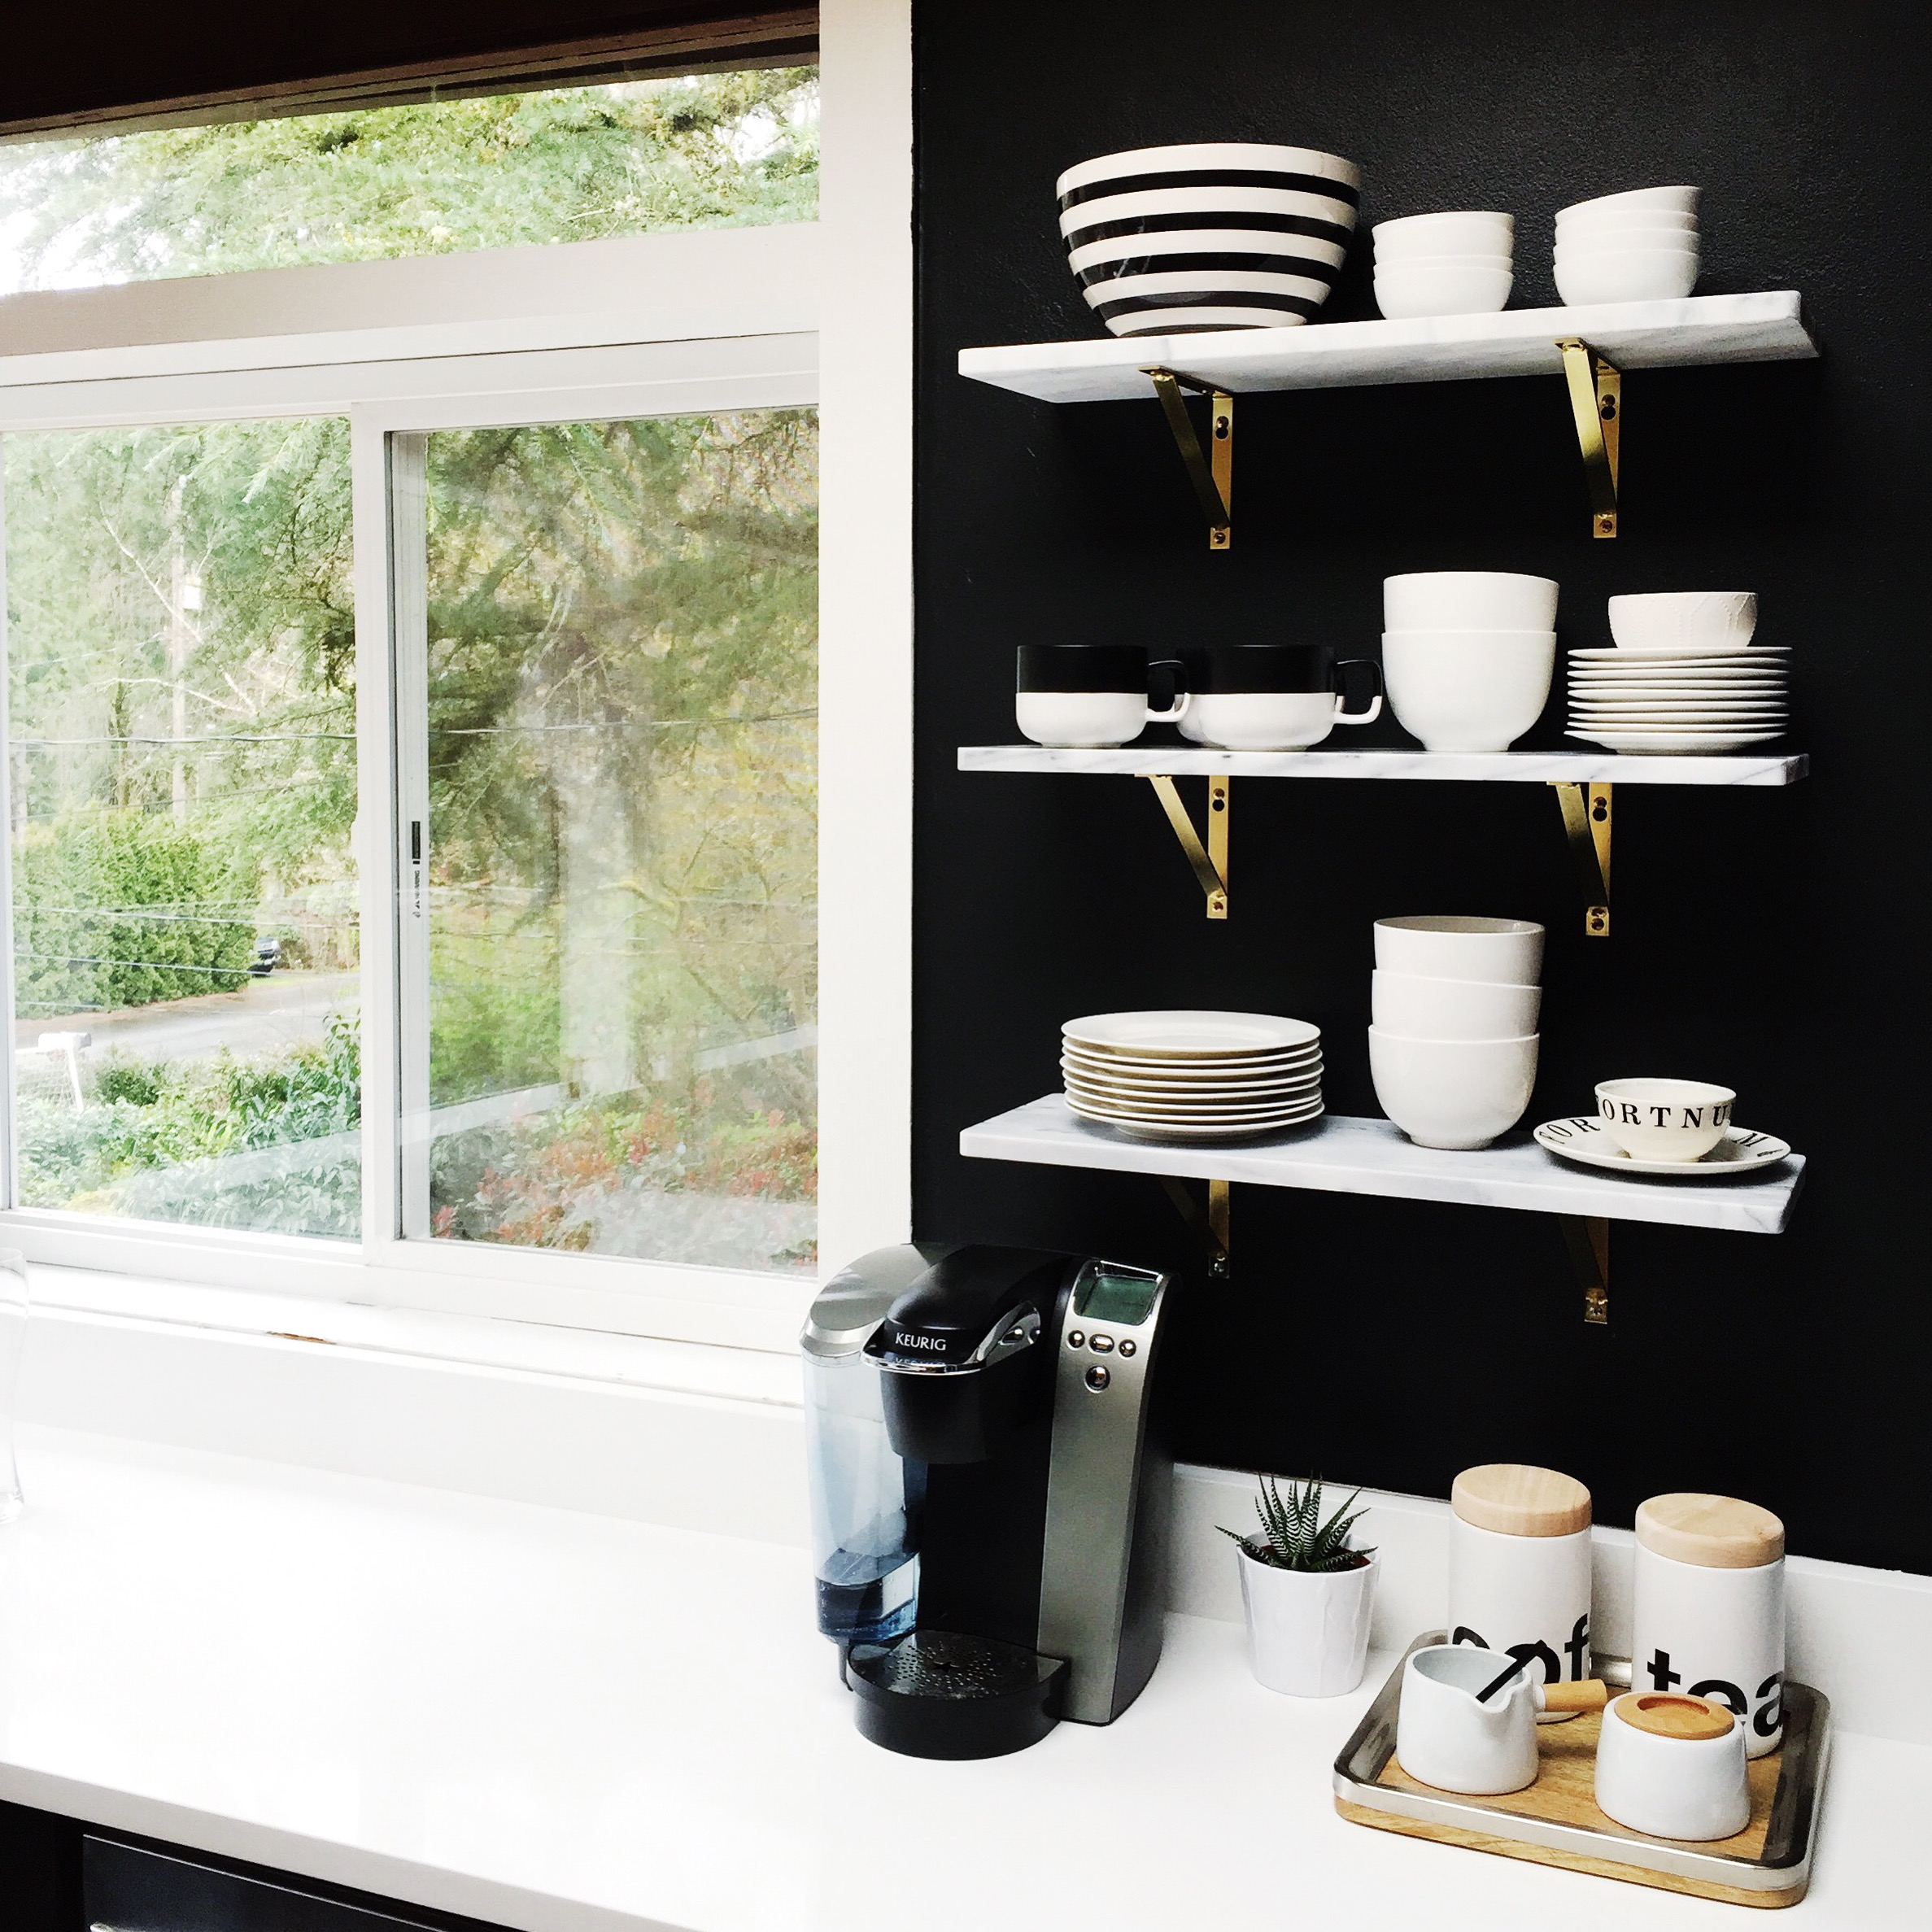 Open shelving & a black and white colour scheme add to the modern kitchen.